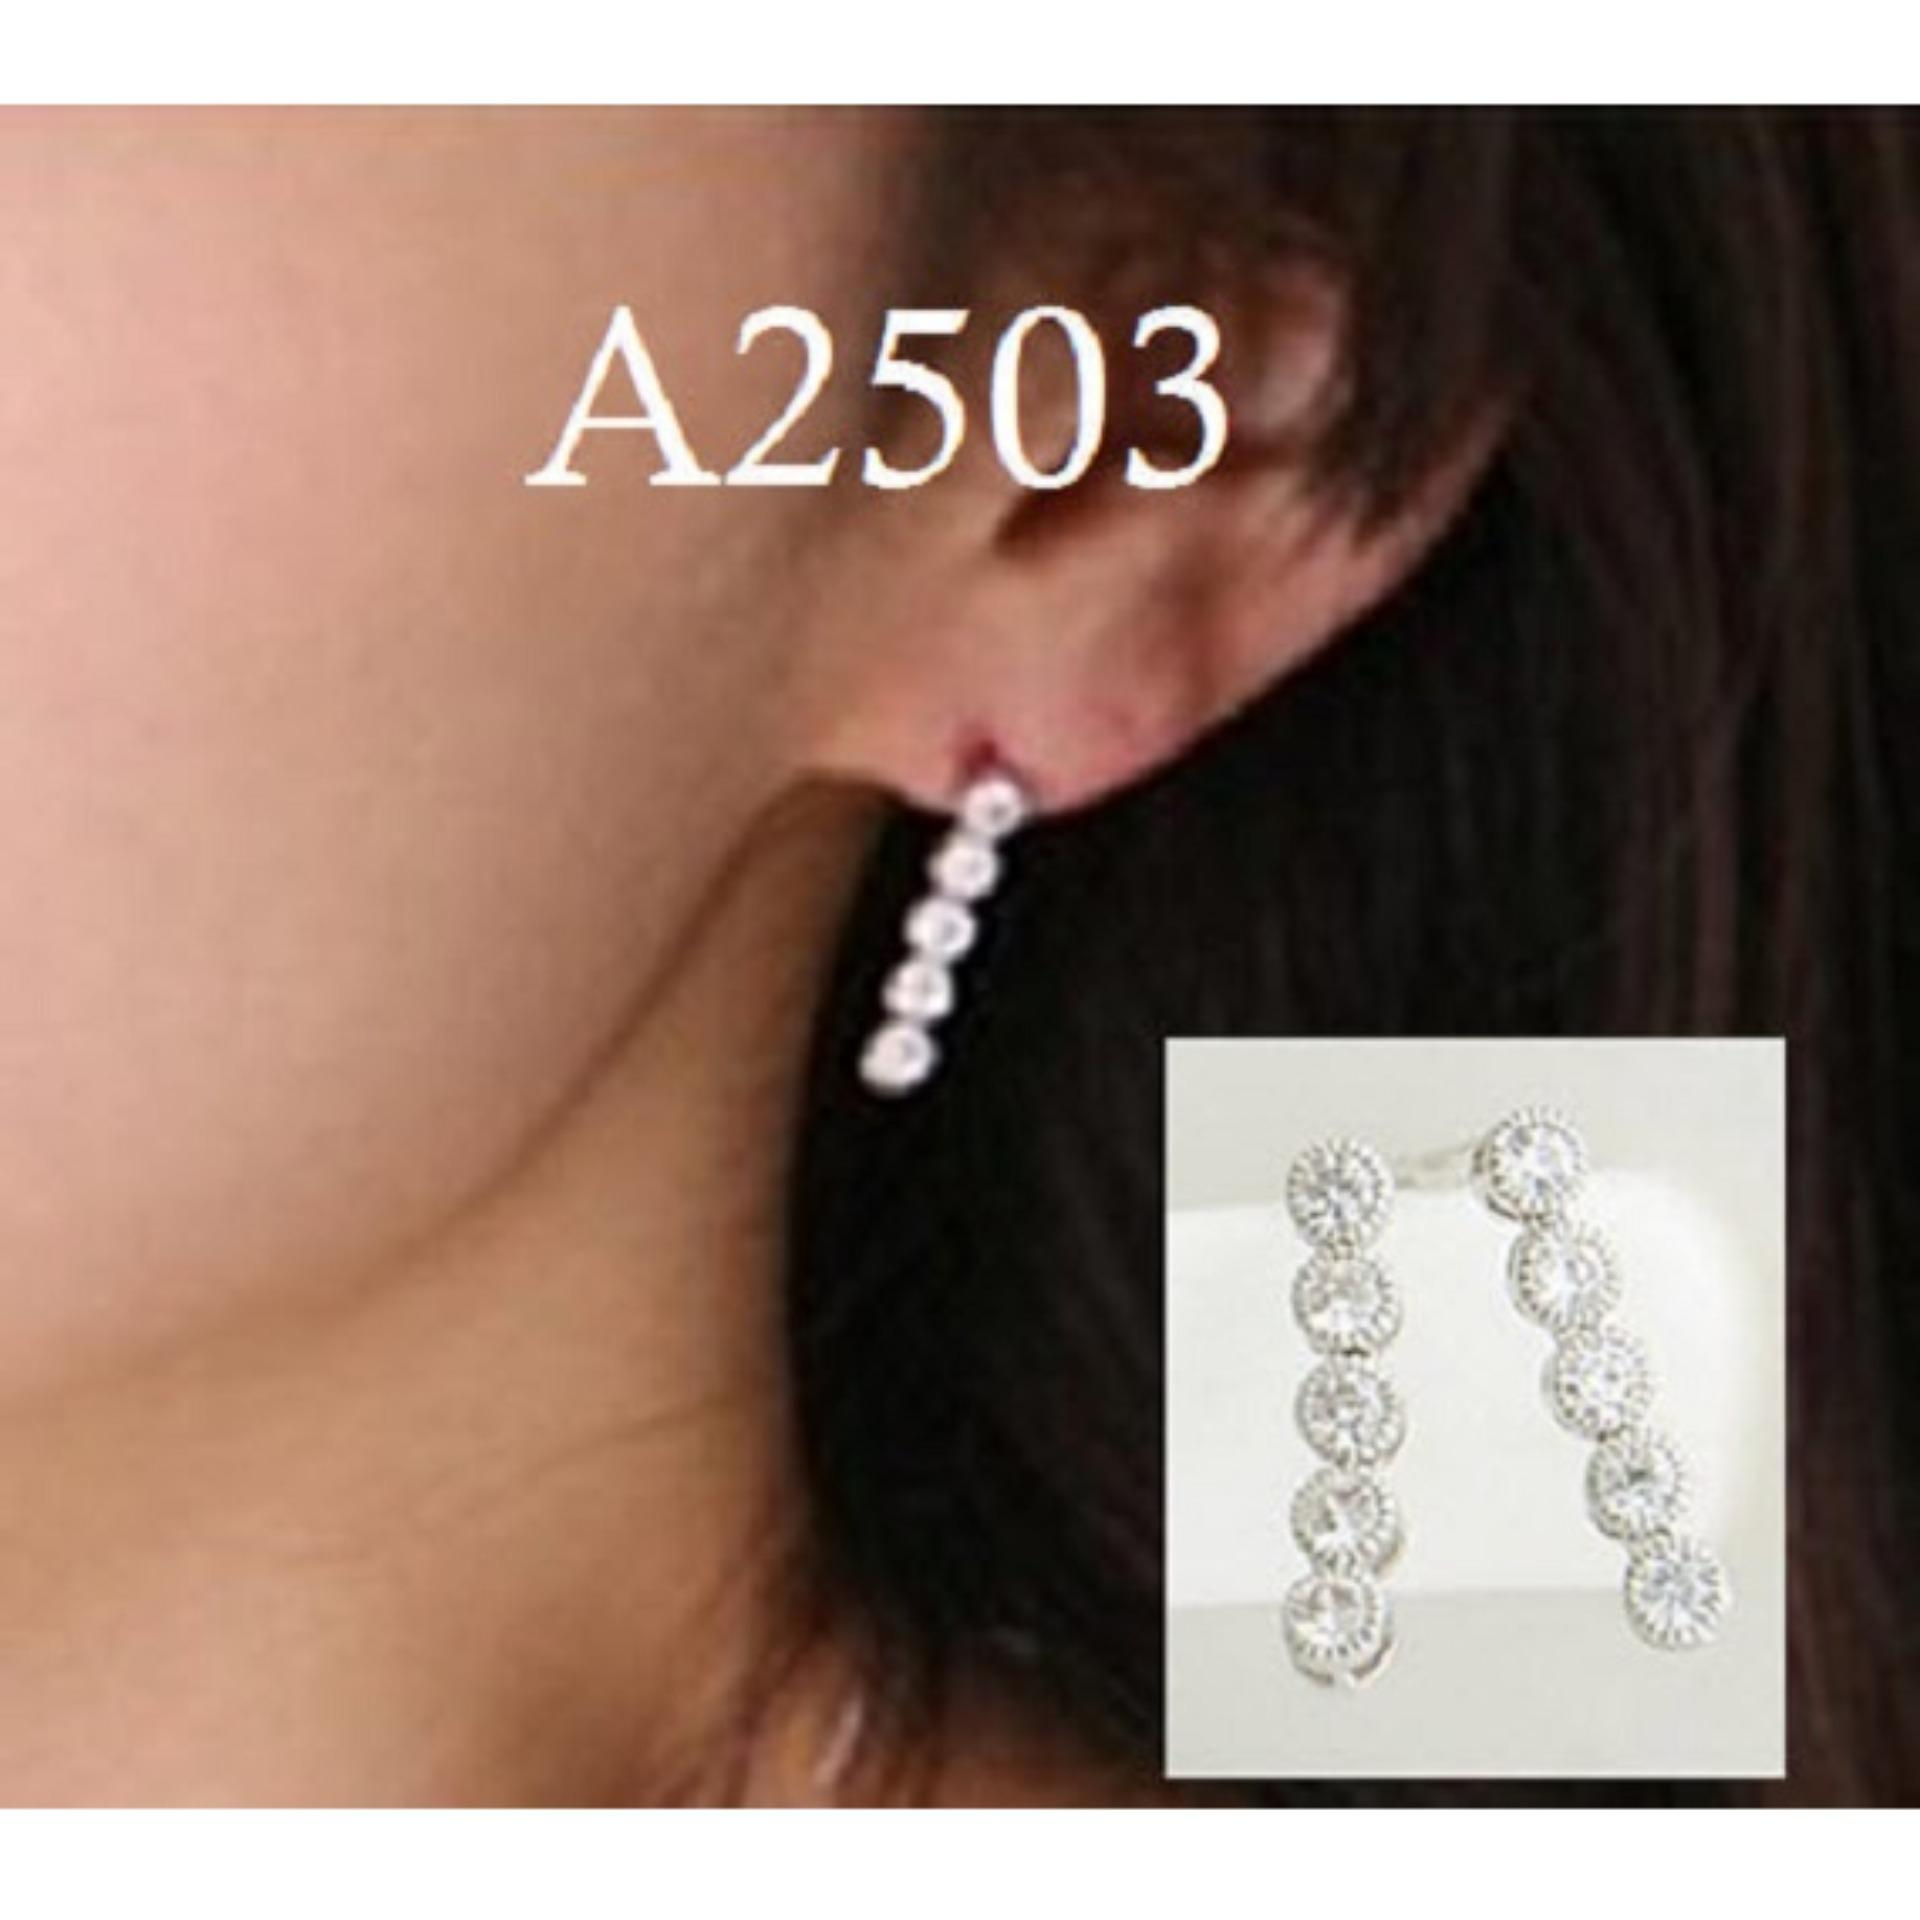 Anting Panjang (Jual Kalung Korea Gelang Cincin Perhiasan Set Xuping)